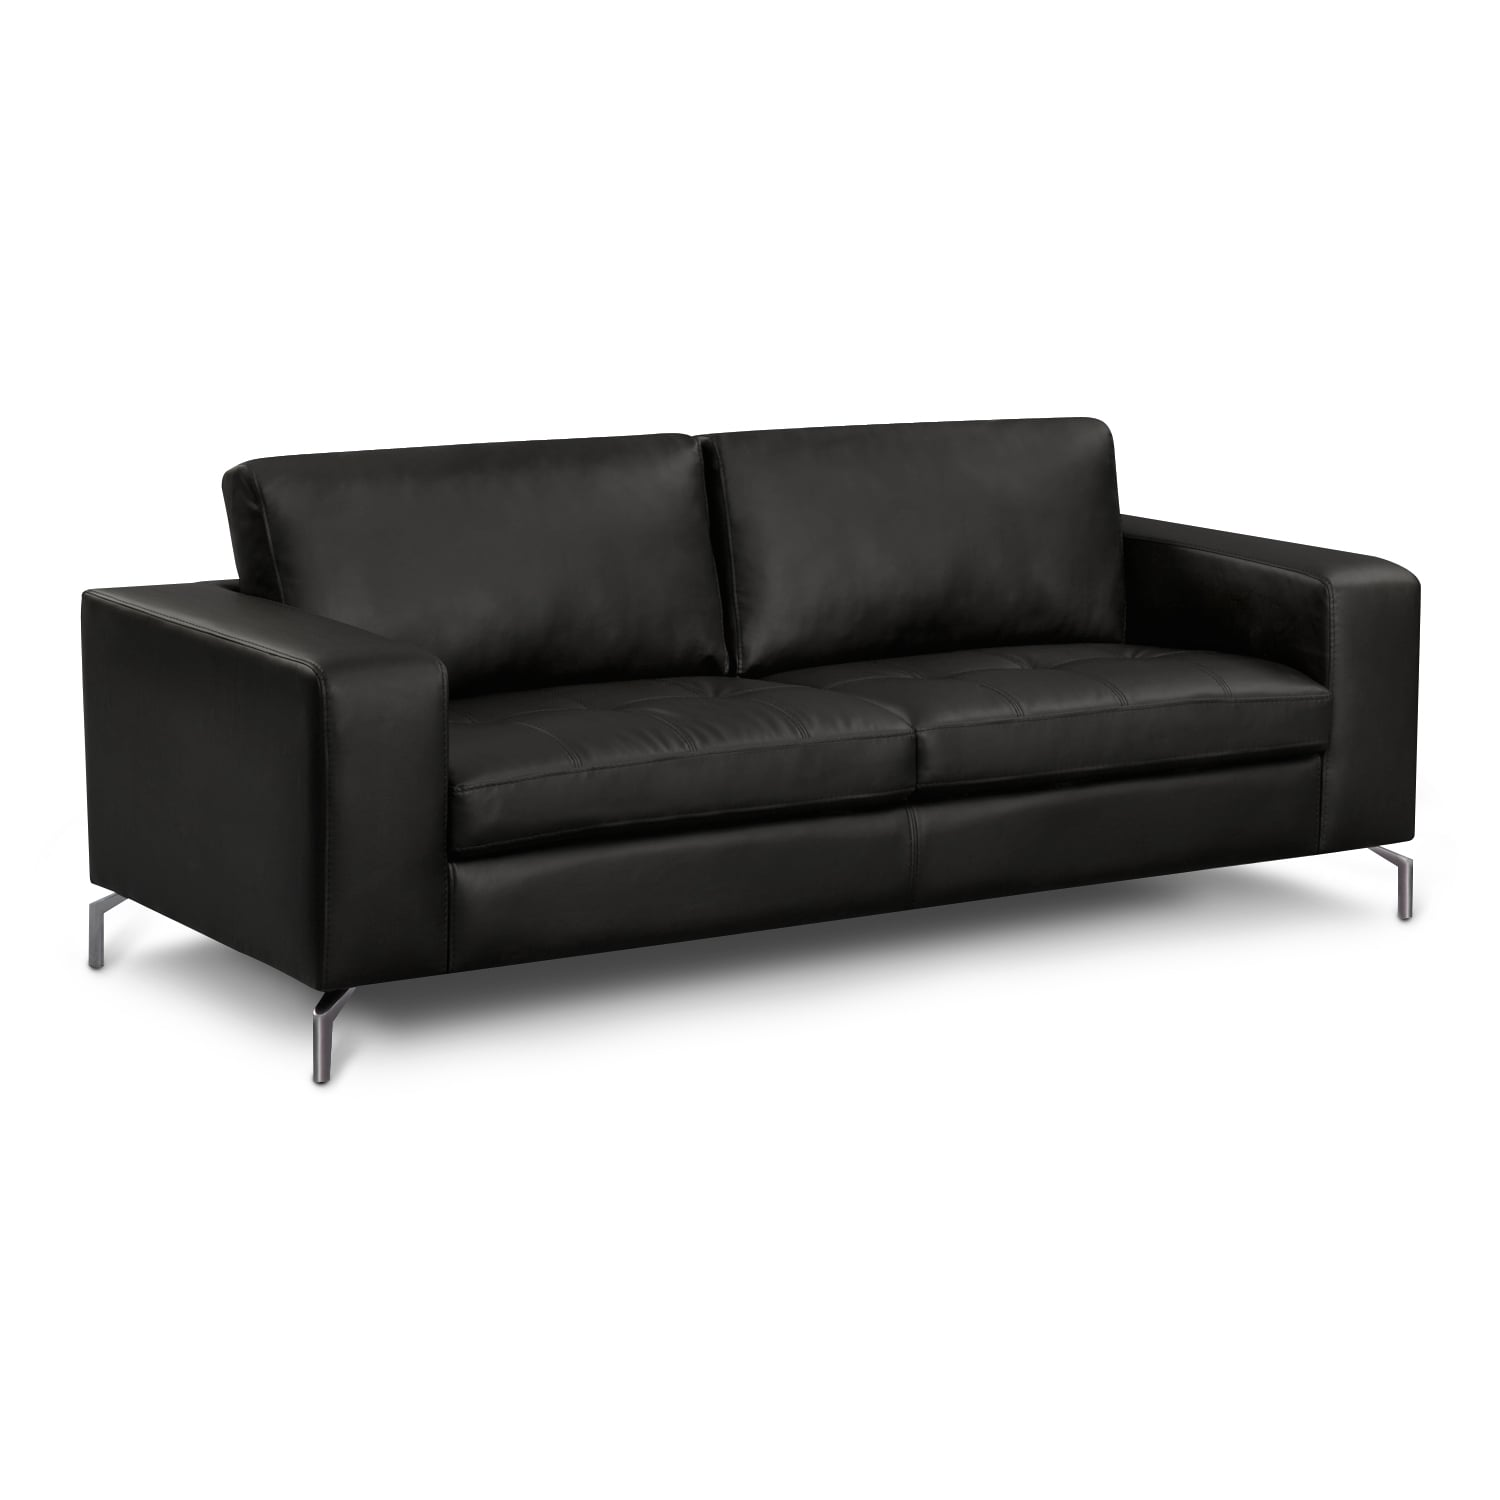 Living Room Furniture - Casino II Sofa